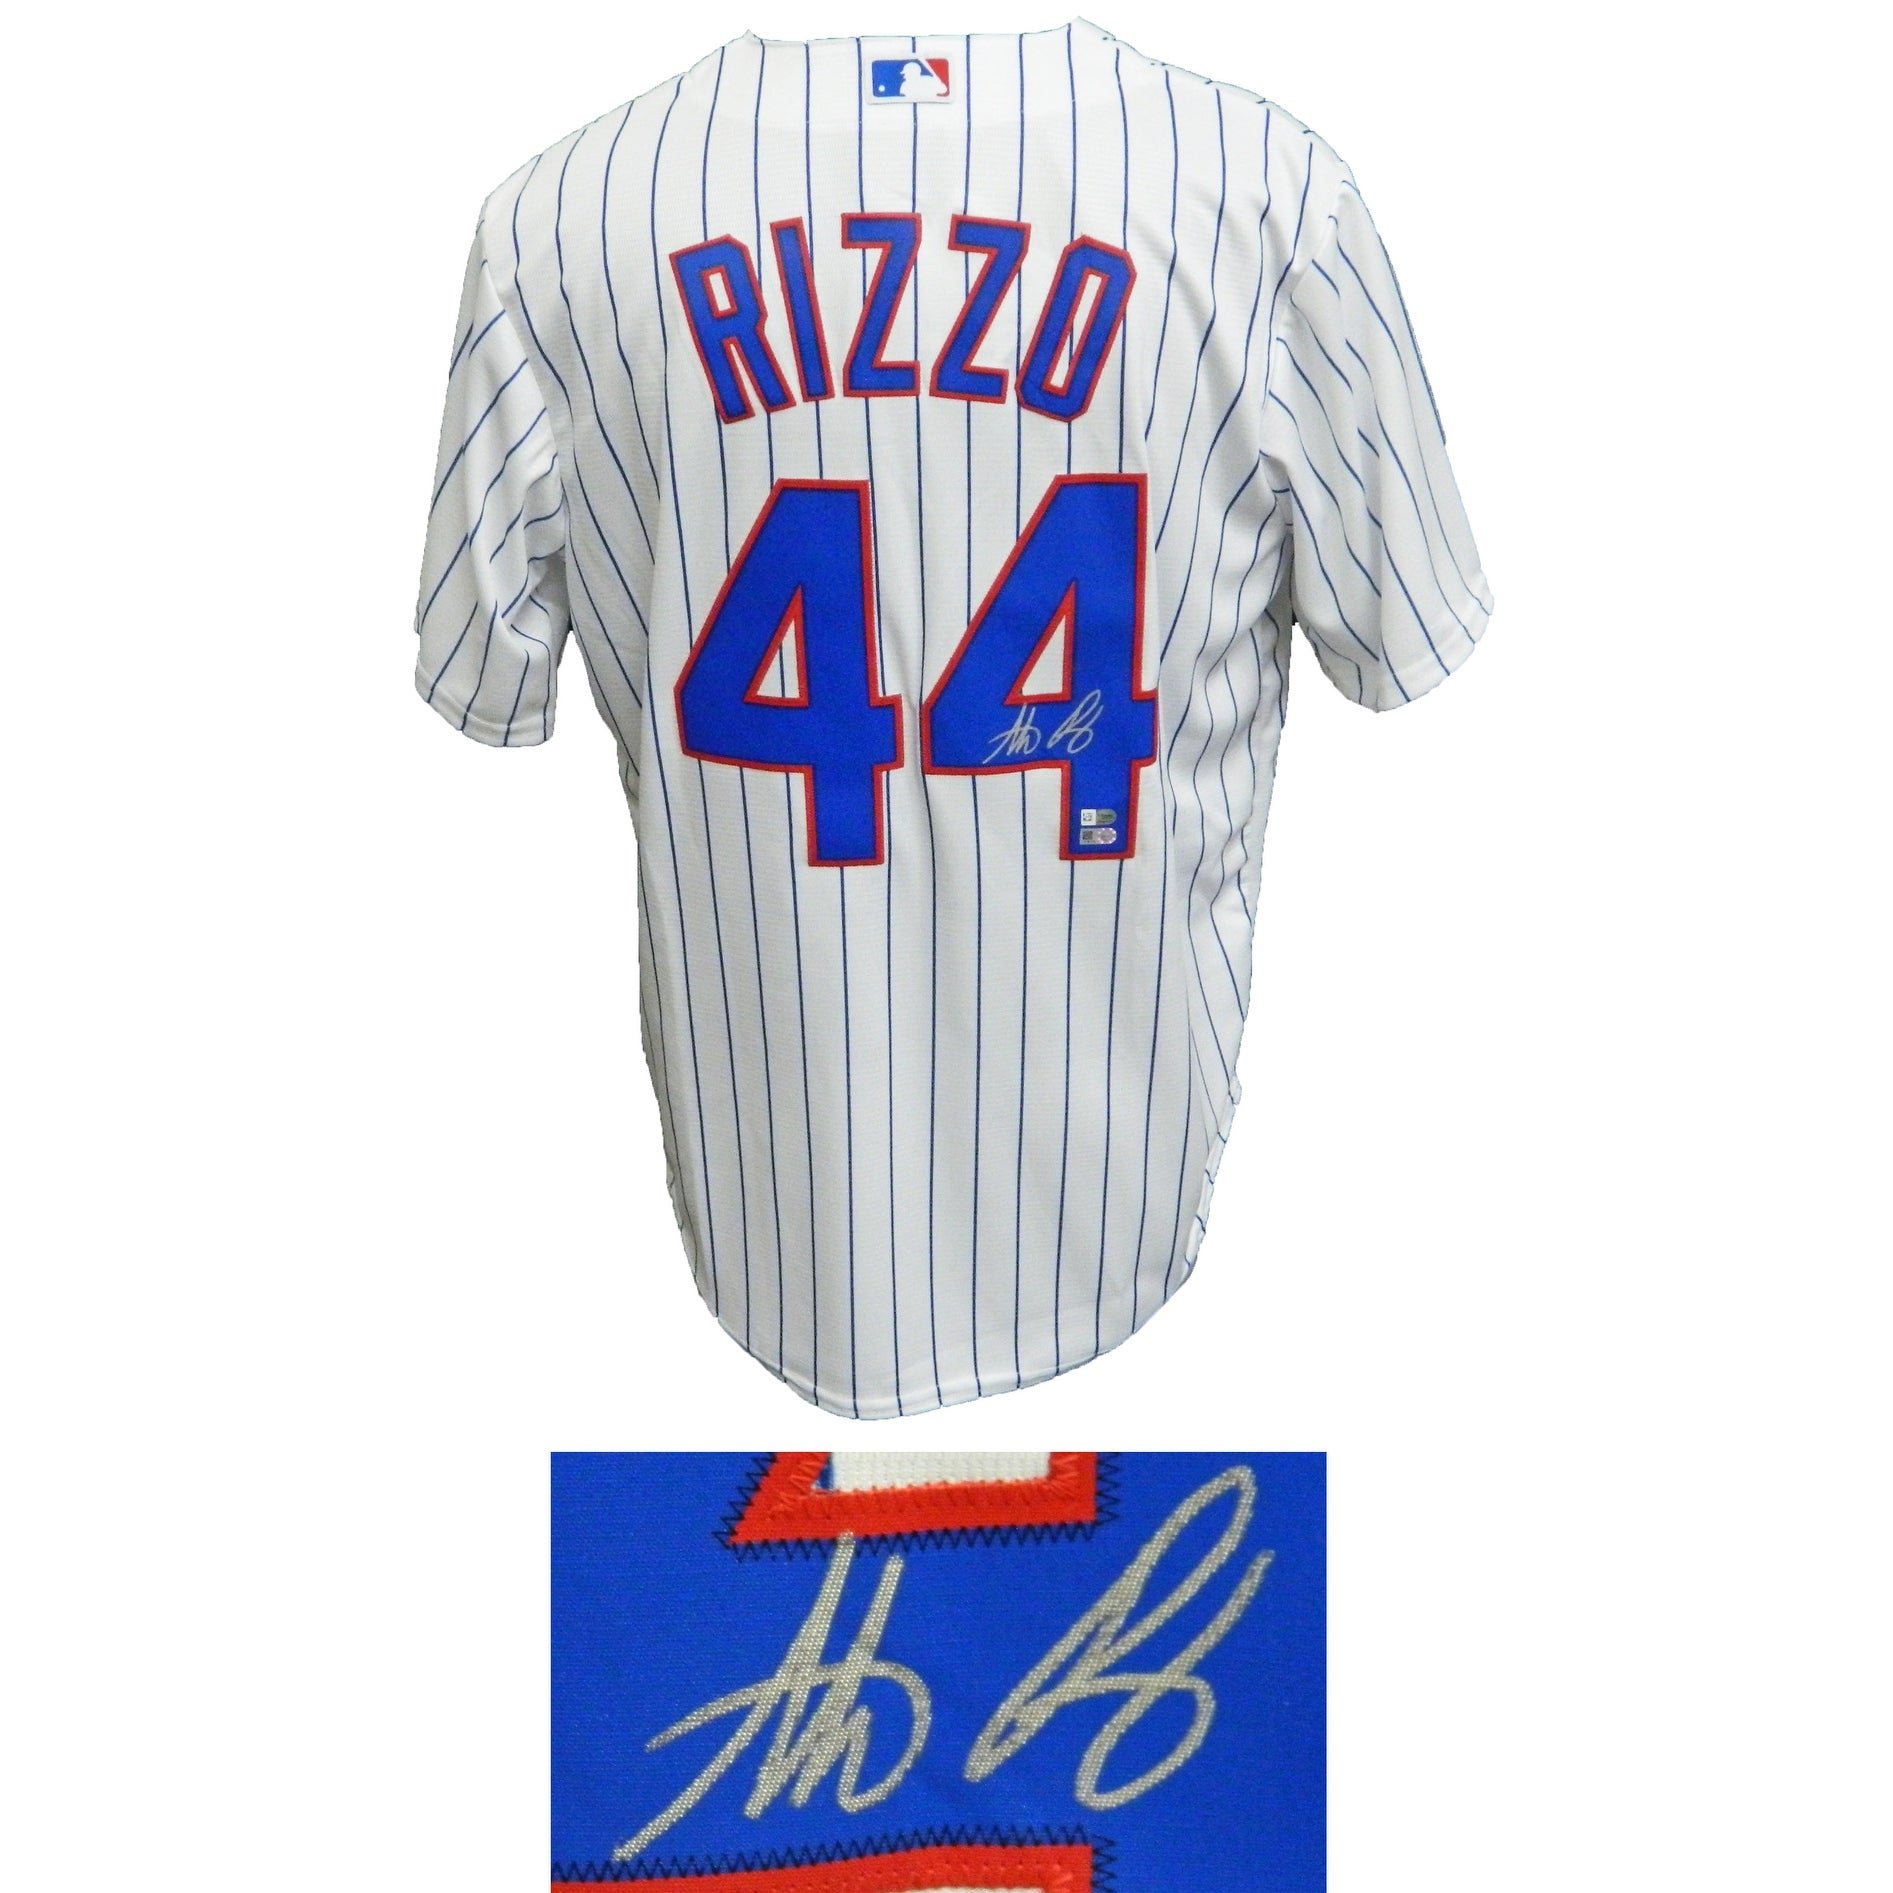 bd82d7360 Shop Anthony Rizzo Chicago Cubs White Pinstripe Majestic Jersey - Free  Shipping Today - Overstock - 13271083